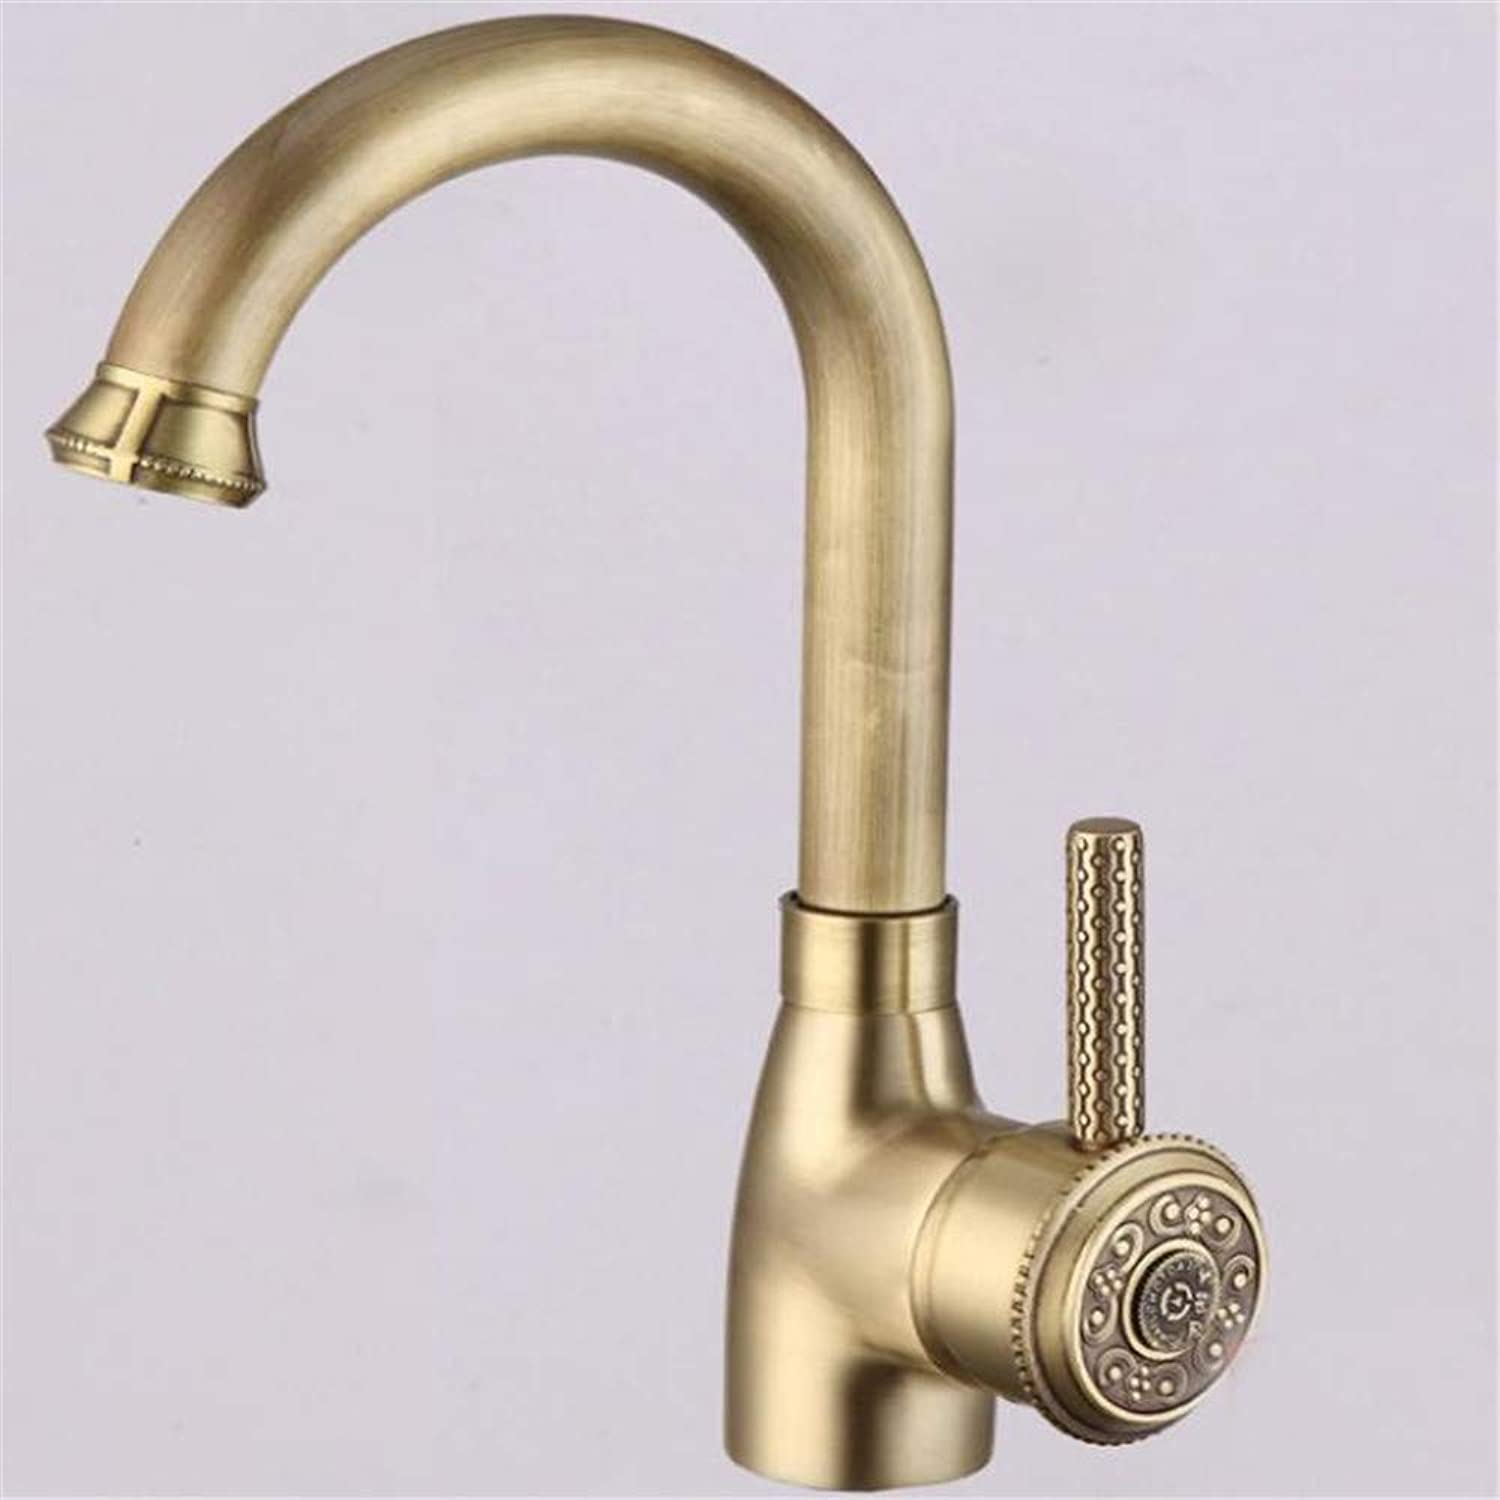 Basin Mixer Tap All Copper European Cold and Hot Faucet Basin Wash Basin Basin Basin Faucet Can redate.